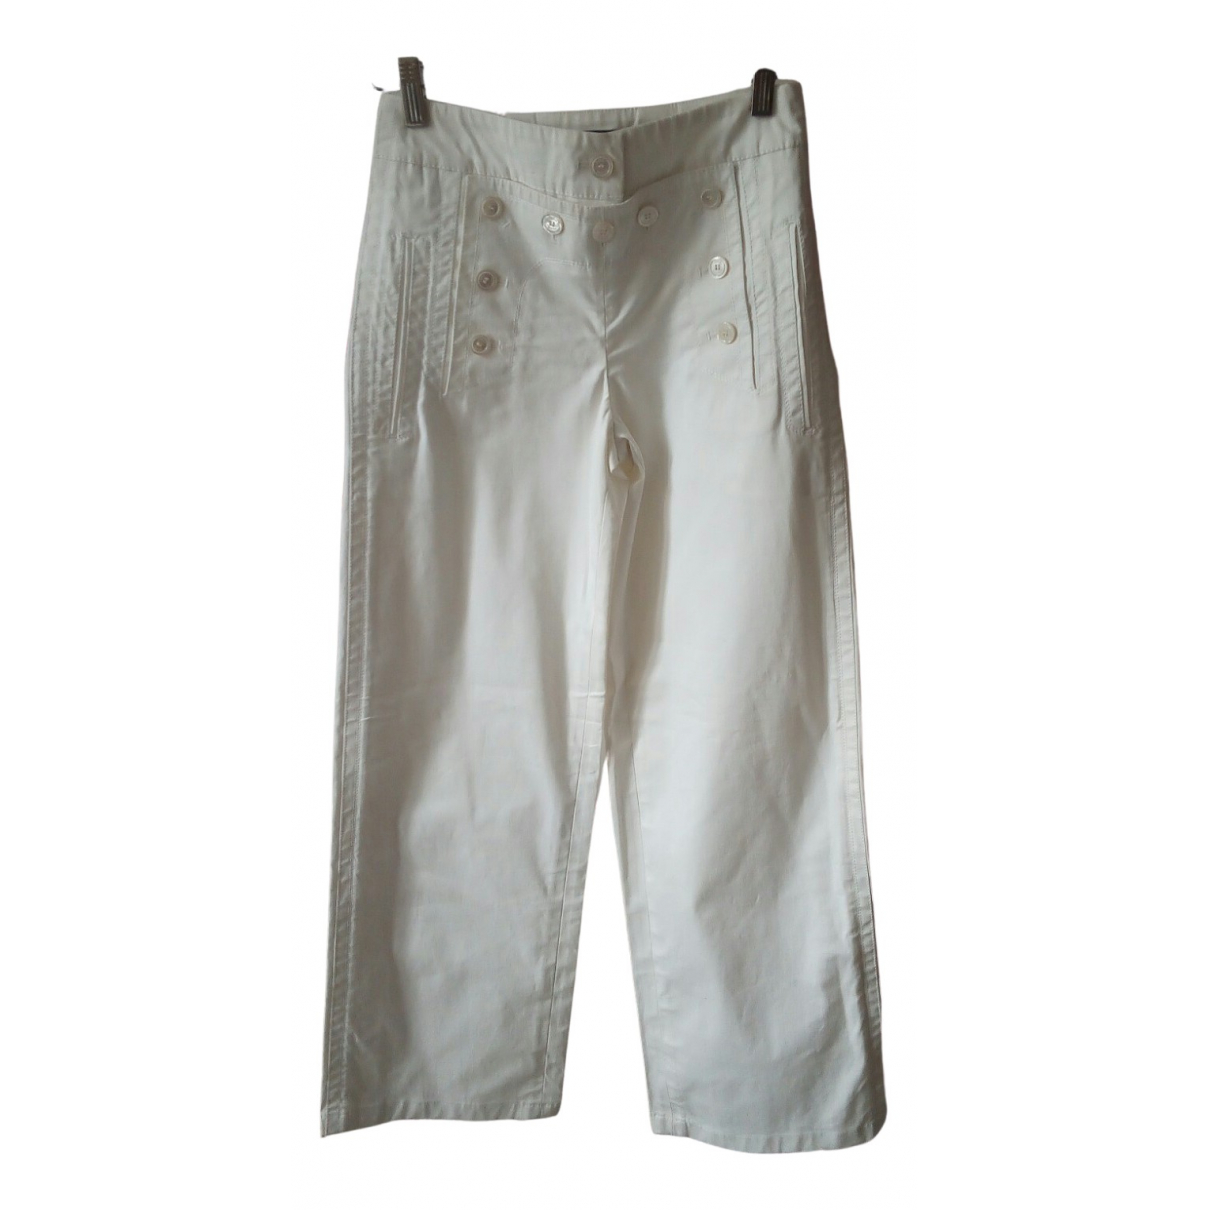 Pantalon largo Louis Vuitton